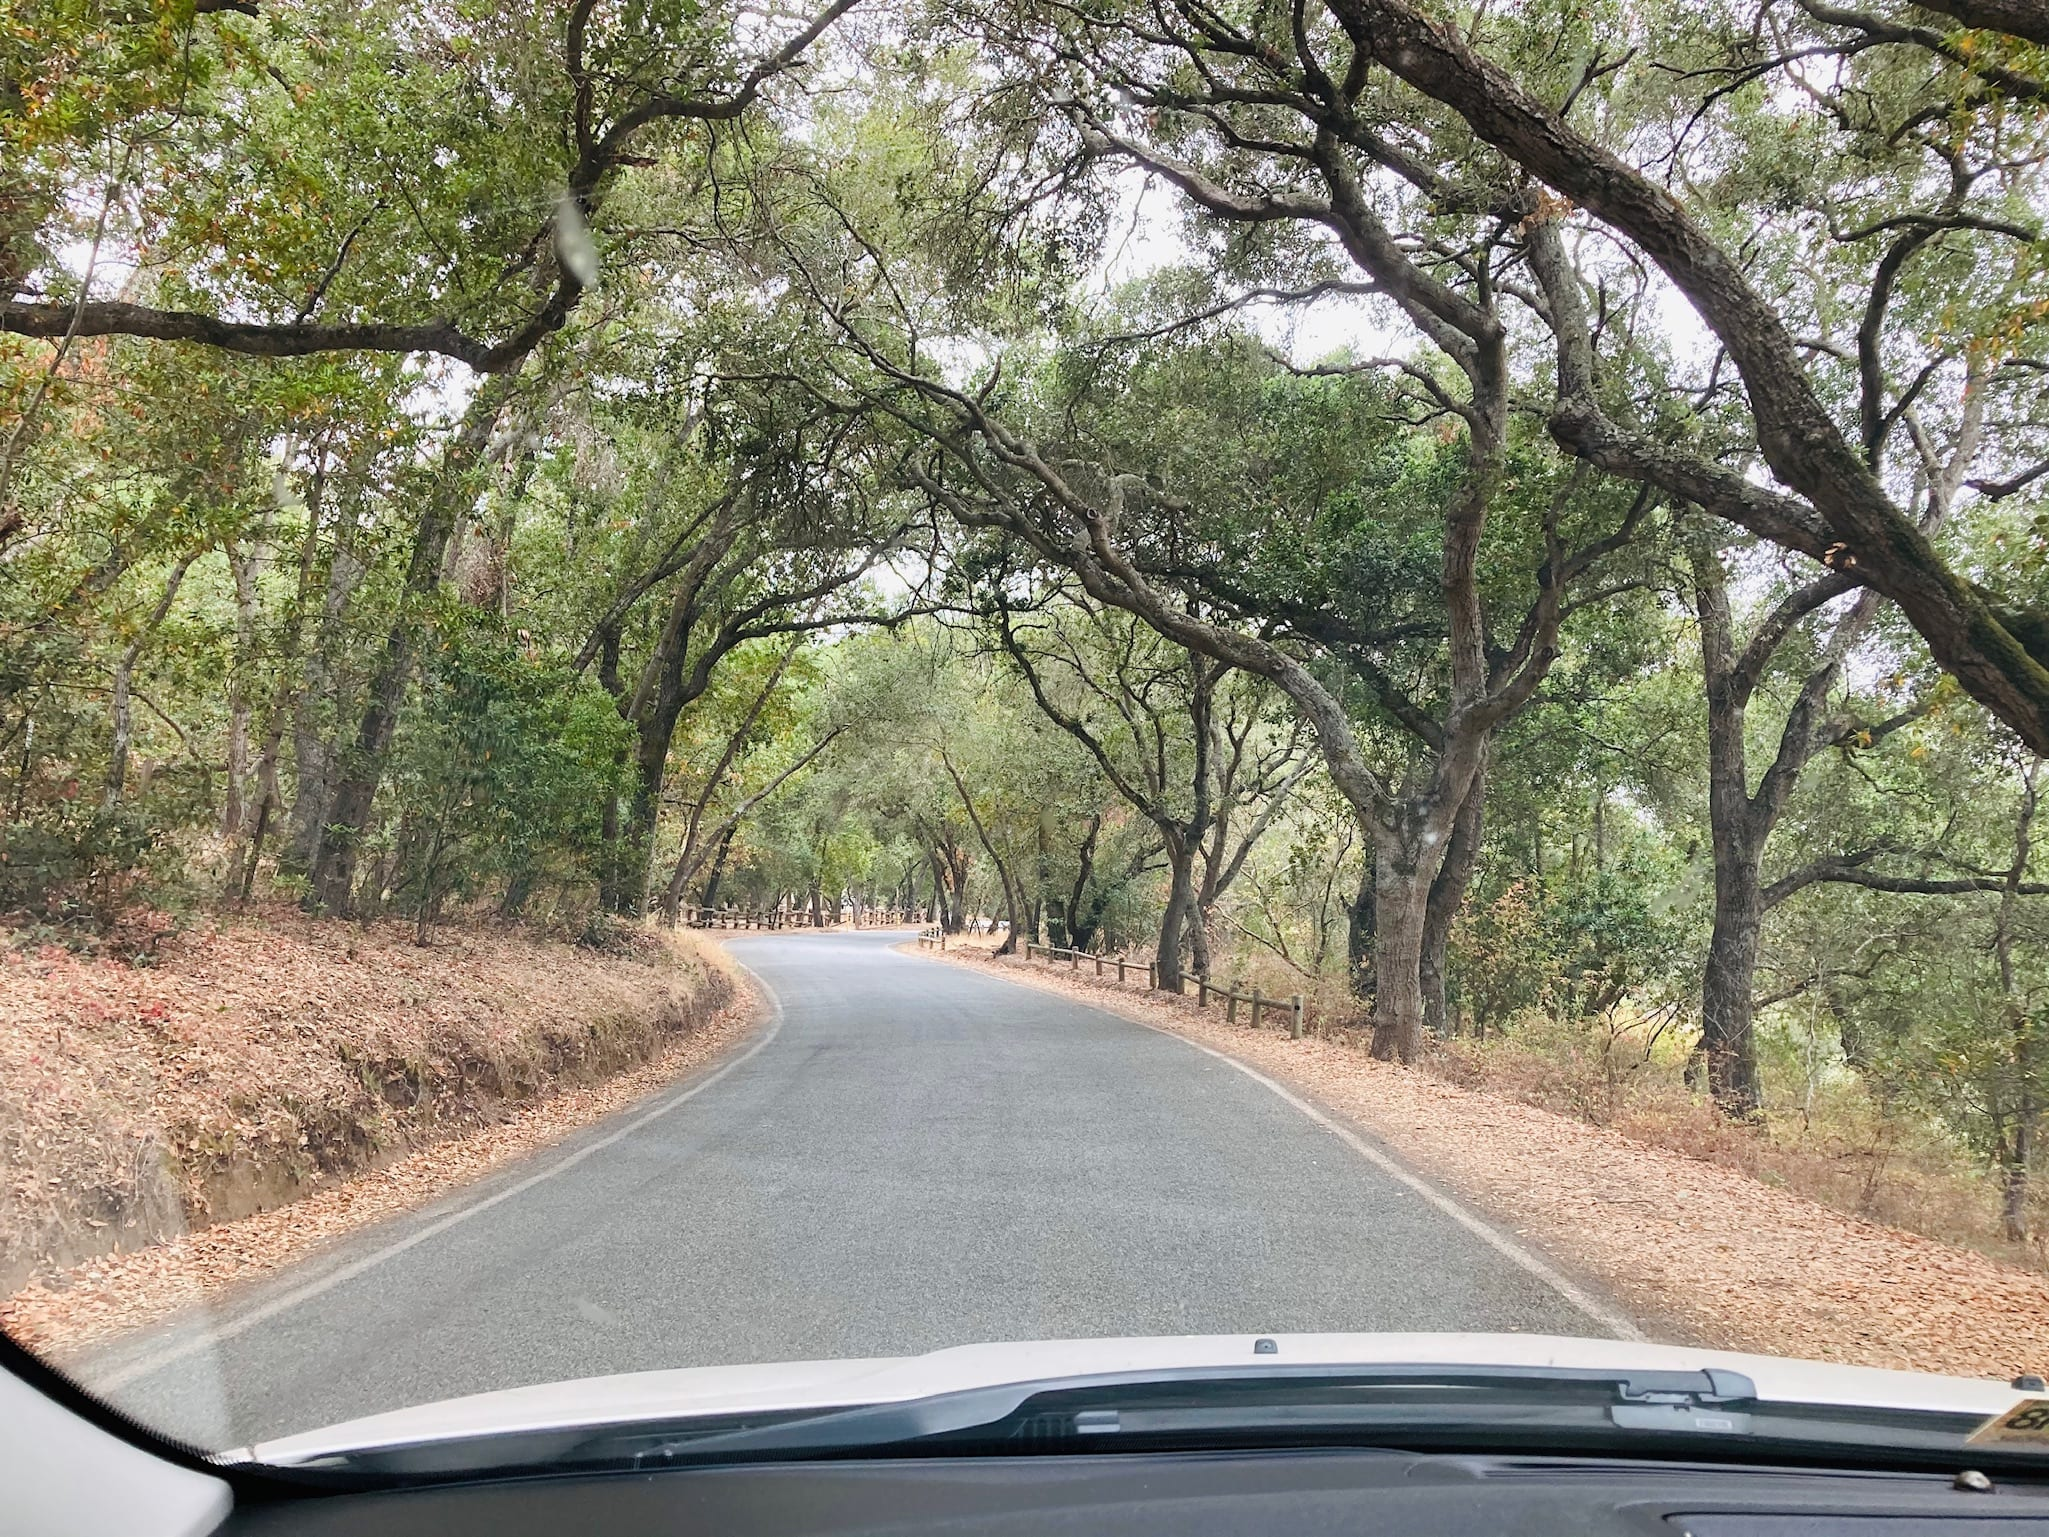 The Drive into Coyote Lake on Coyote Reservoir Road